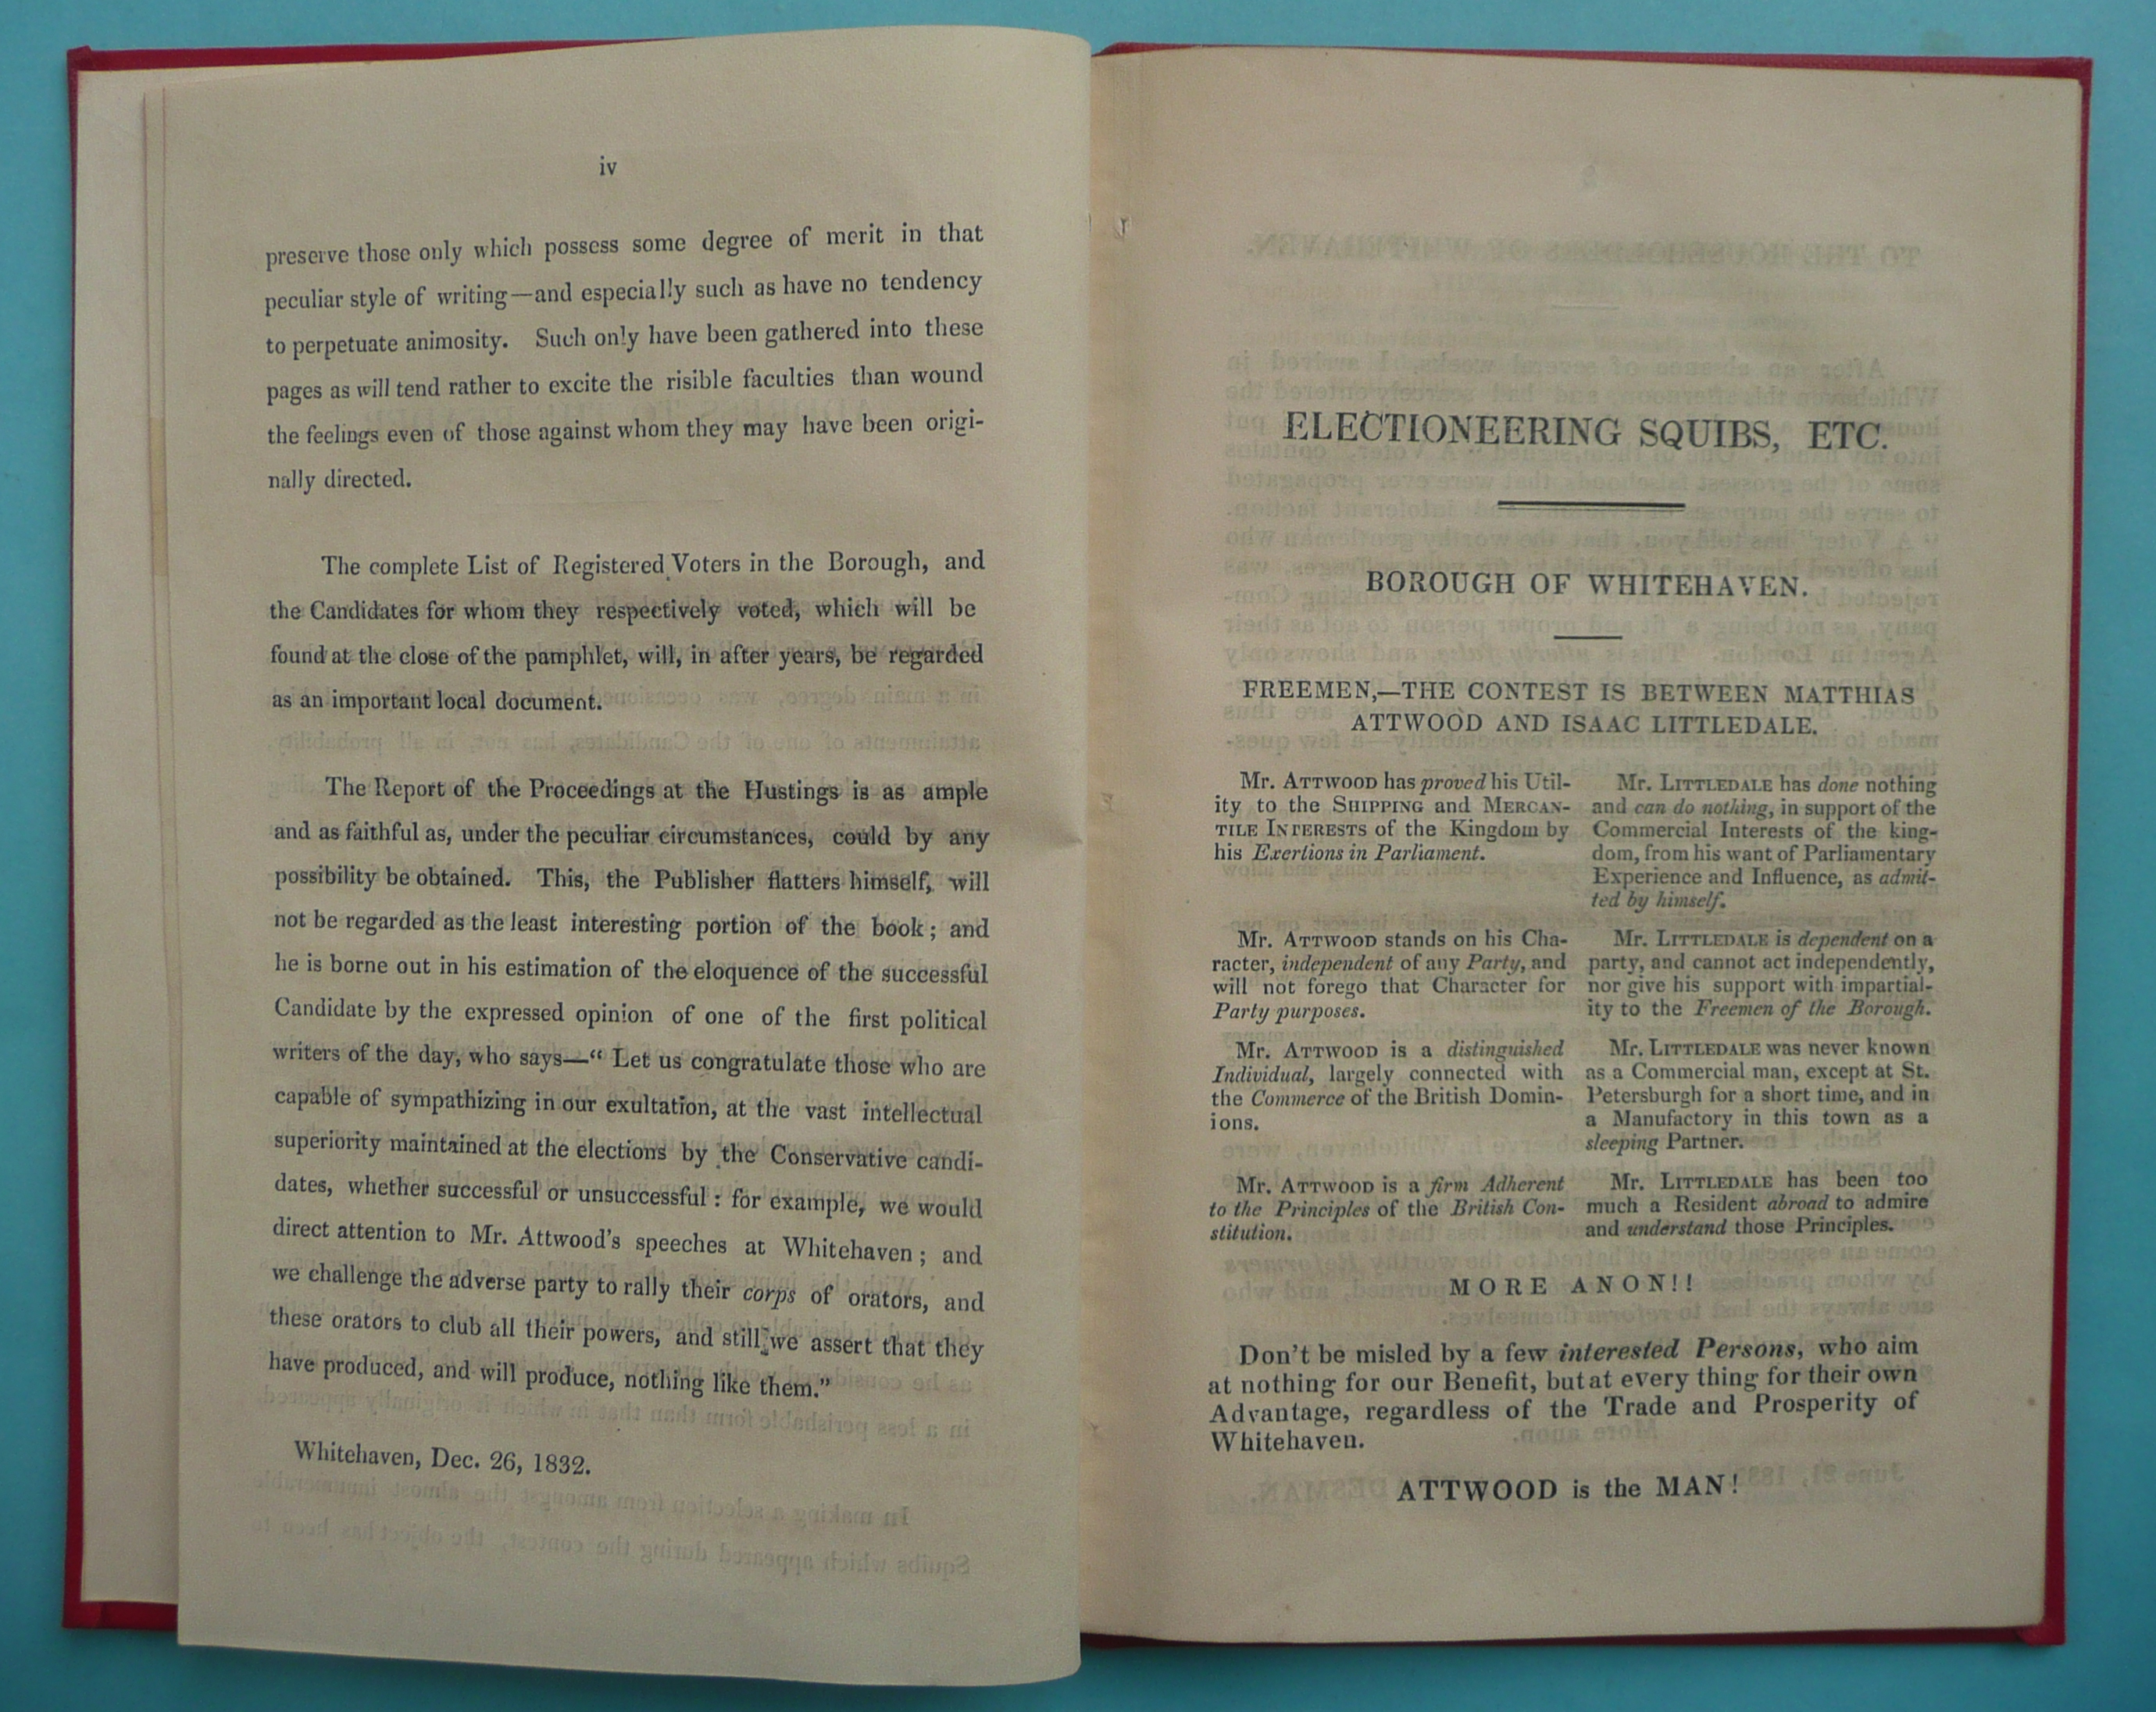 Lot 34 - 1832 General Election in Whitehaven: a rare pottery beaker printed in blue for the passing of the